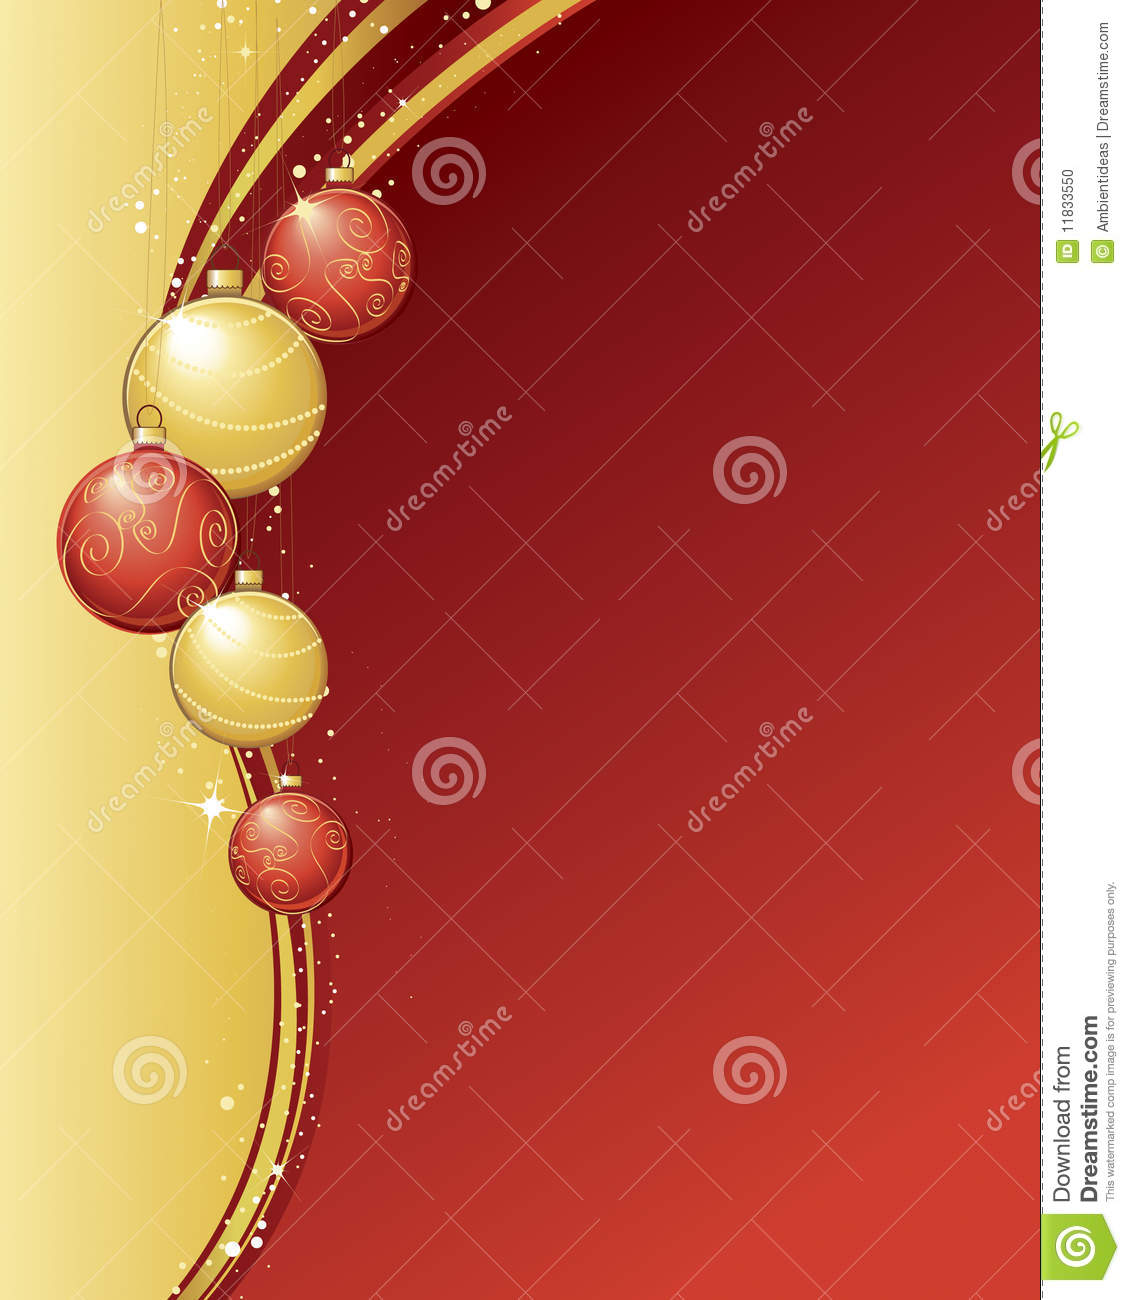 Gold and red christmas decorations - Amazing Red And Gold Christmas Ornaments Stock Photo With Red And Gold Christmas Decorations